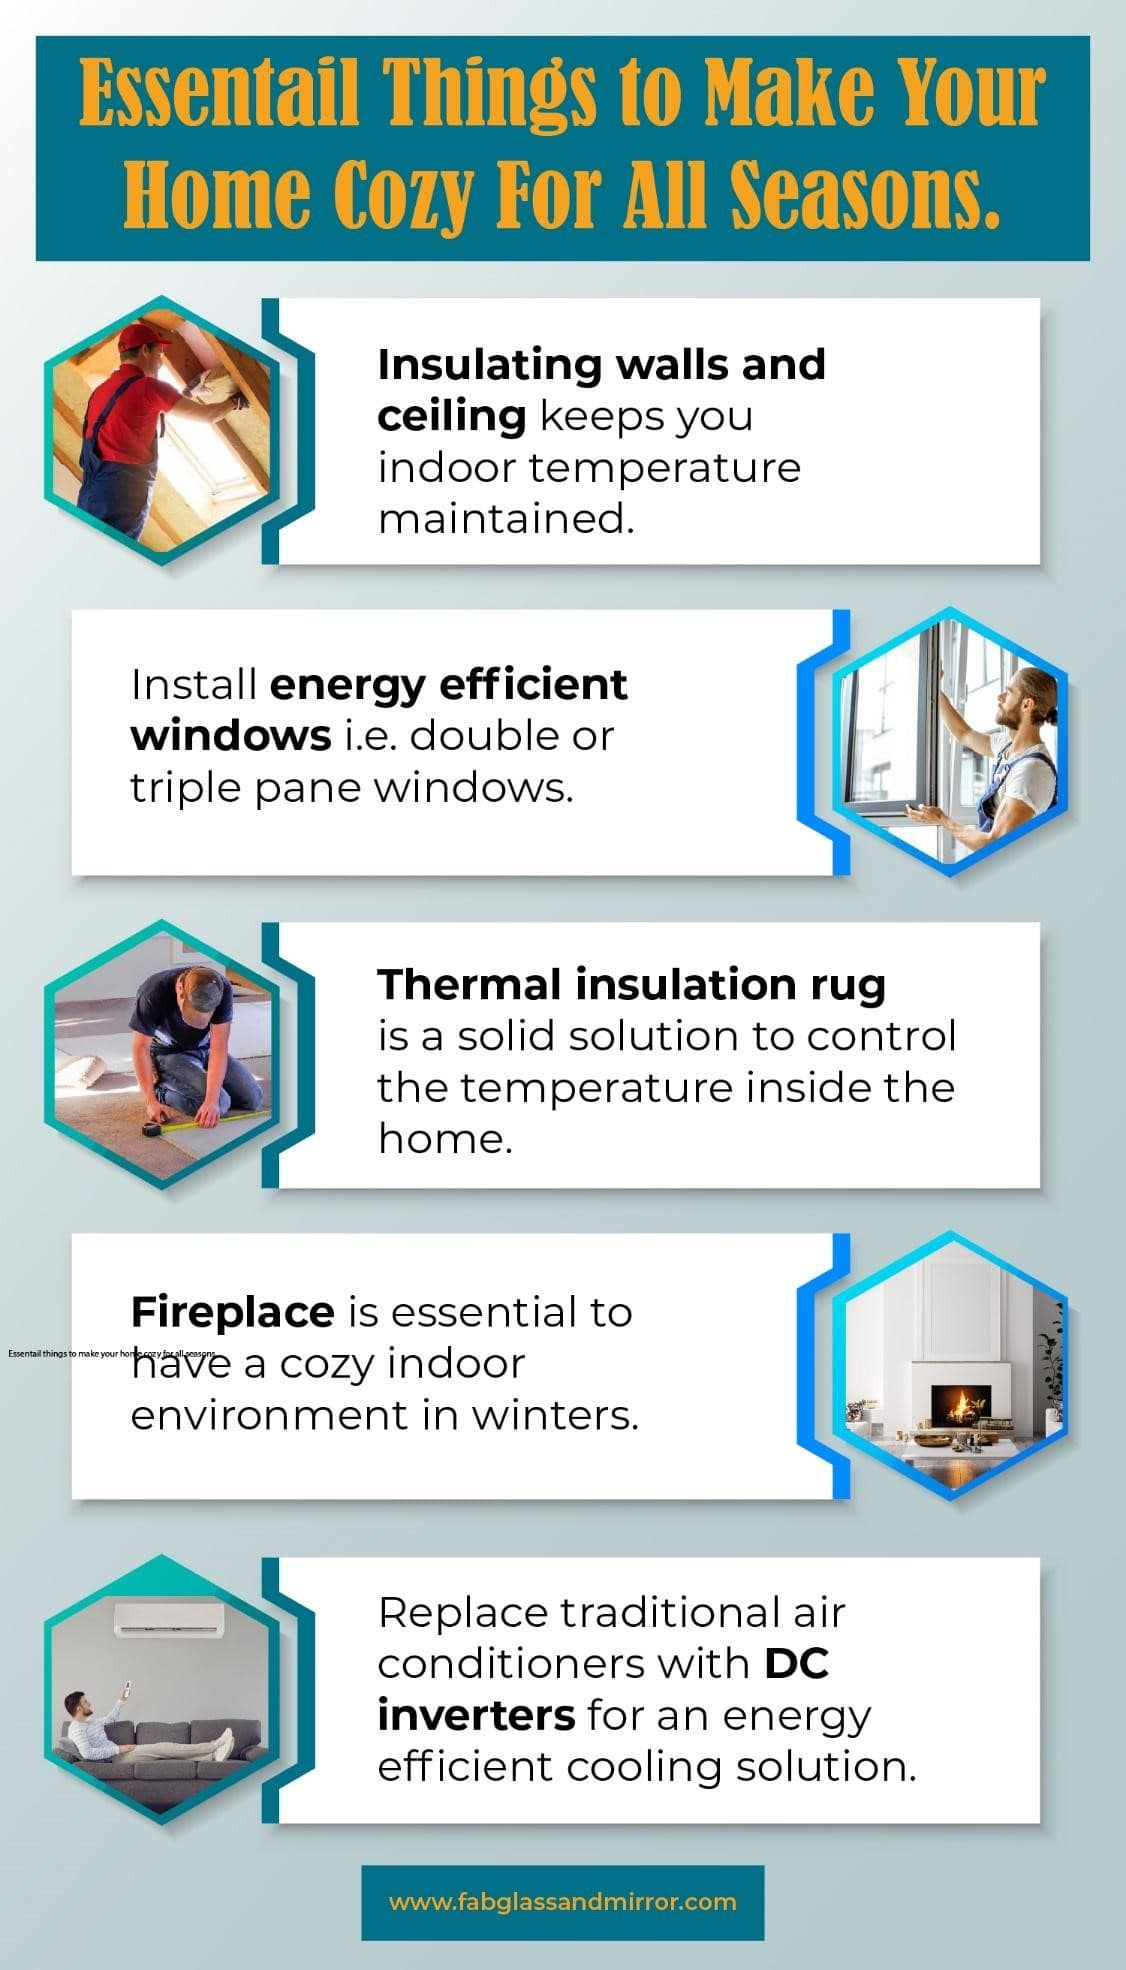 Essential Things to Make Your Home Cozy